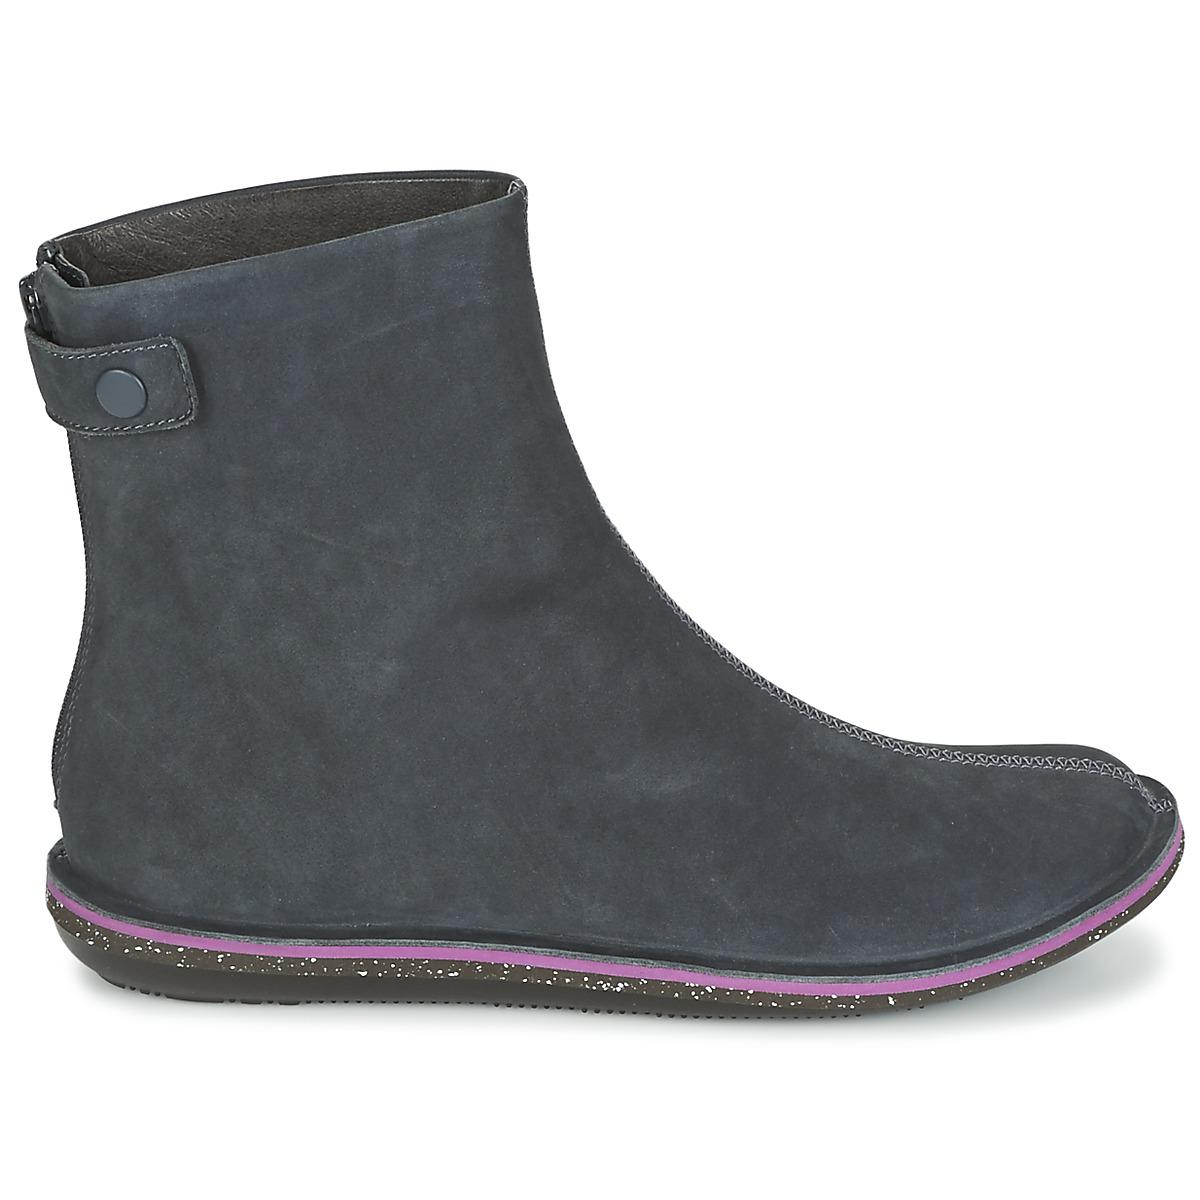 Camper Leather Beetle Women's Mid Boots In Grey in Grey